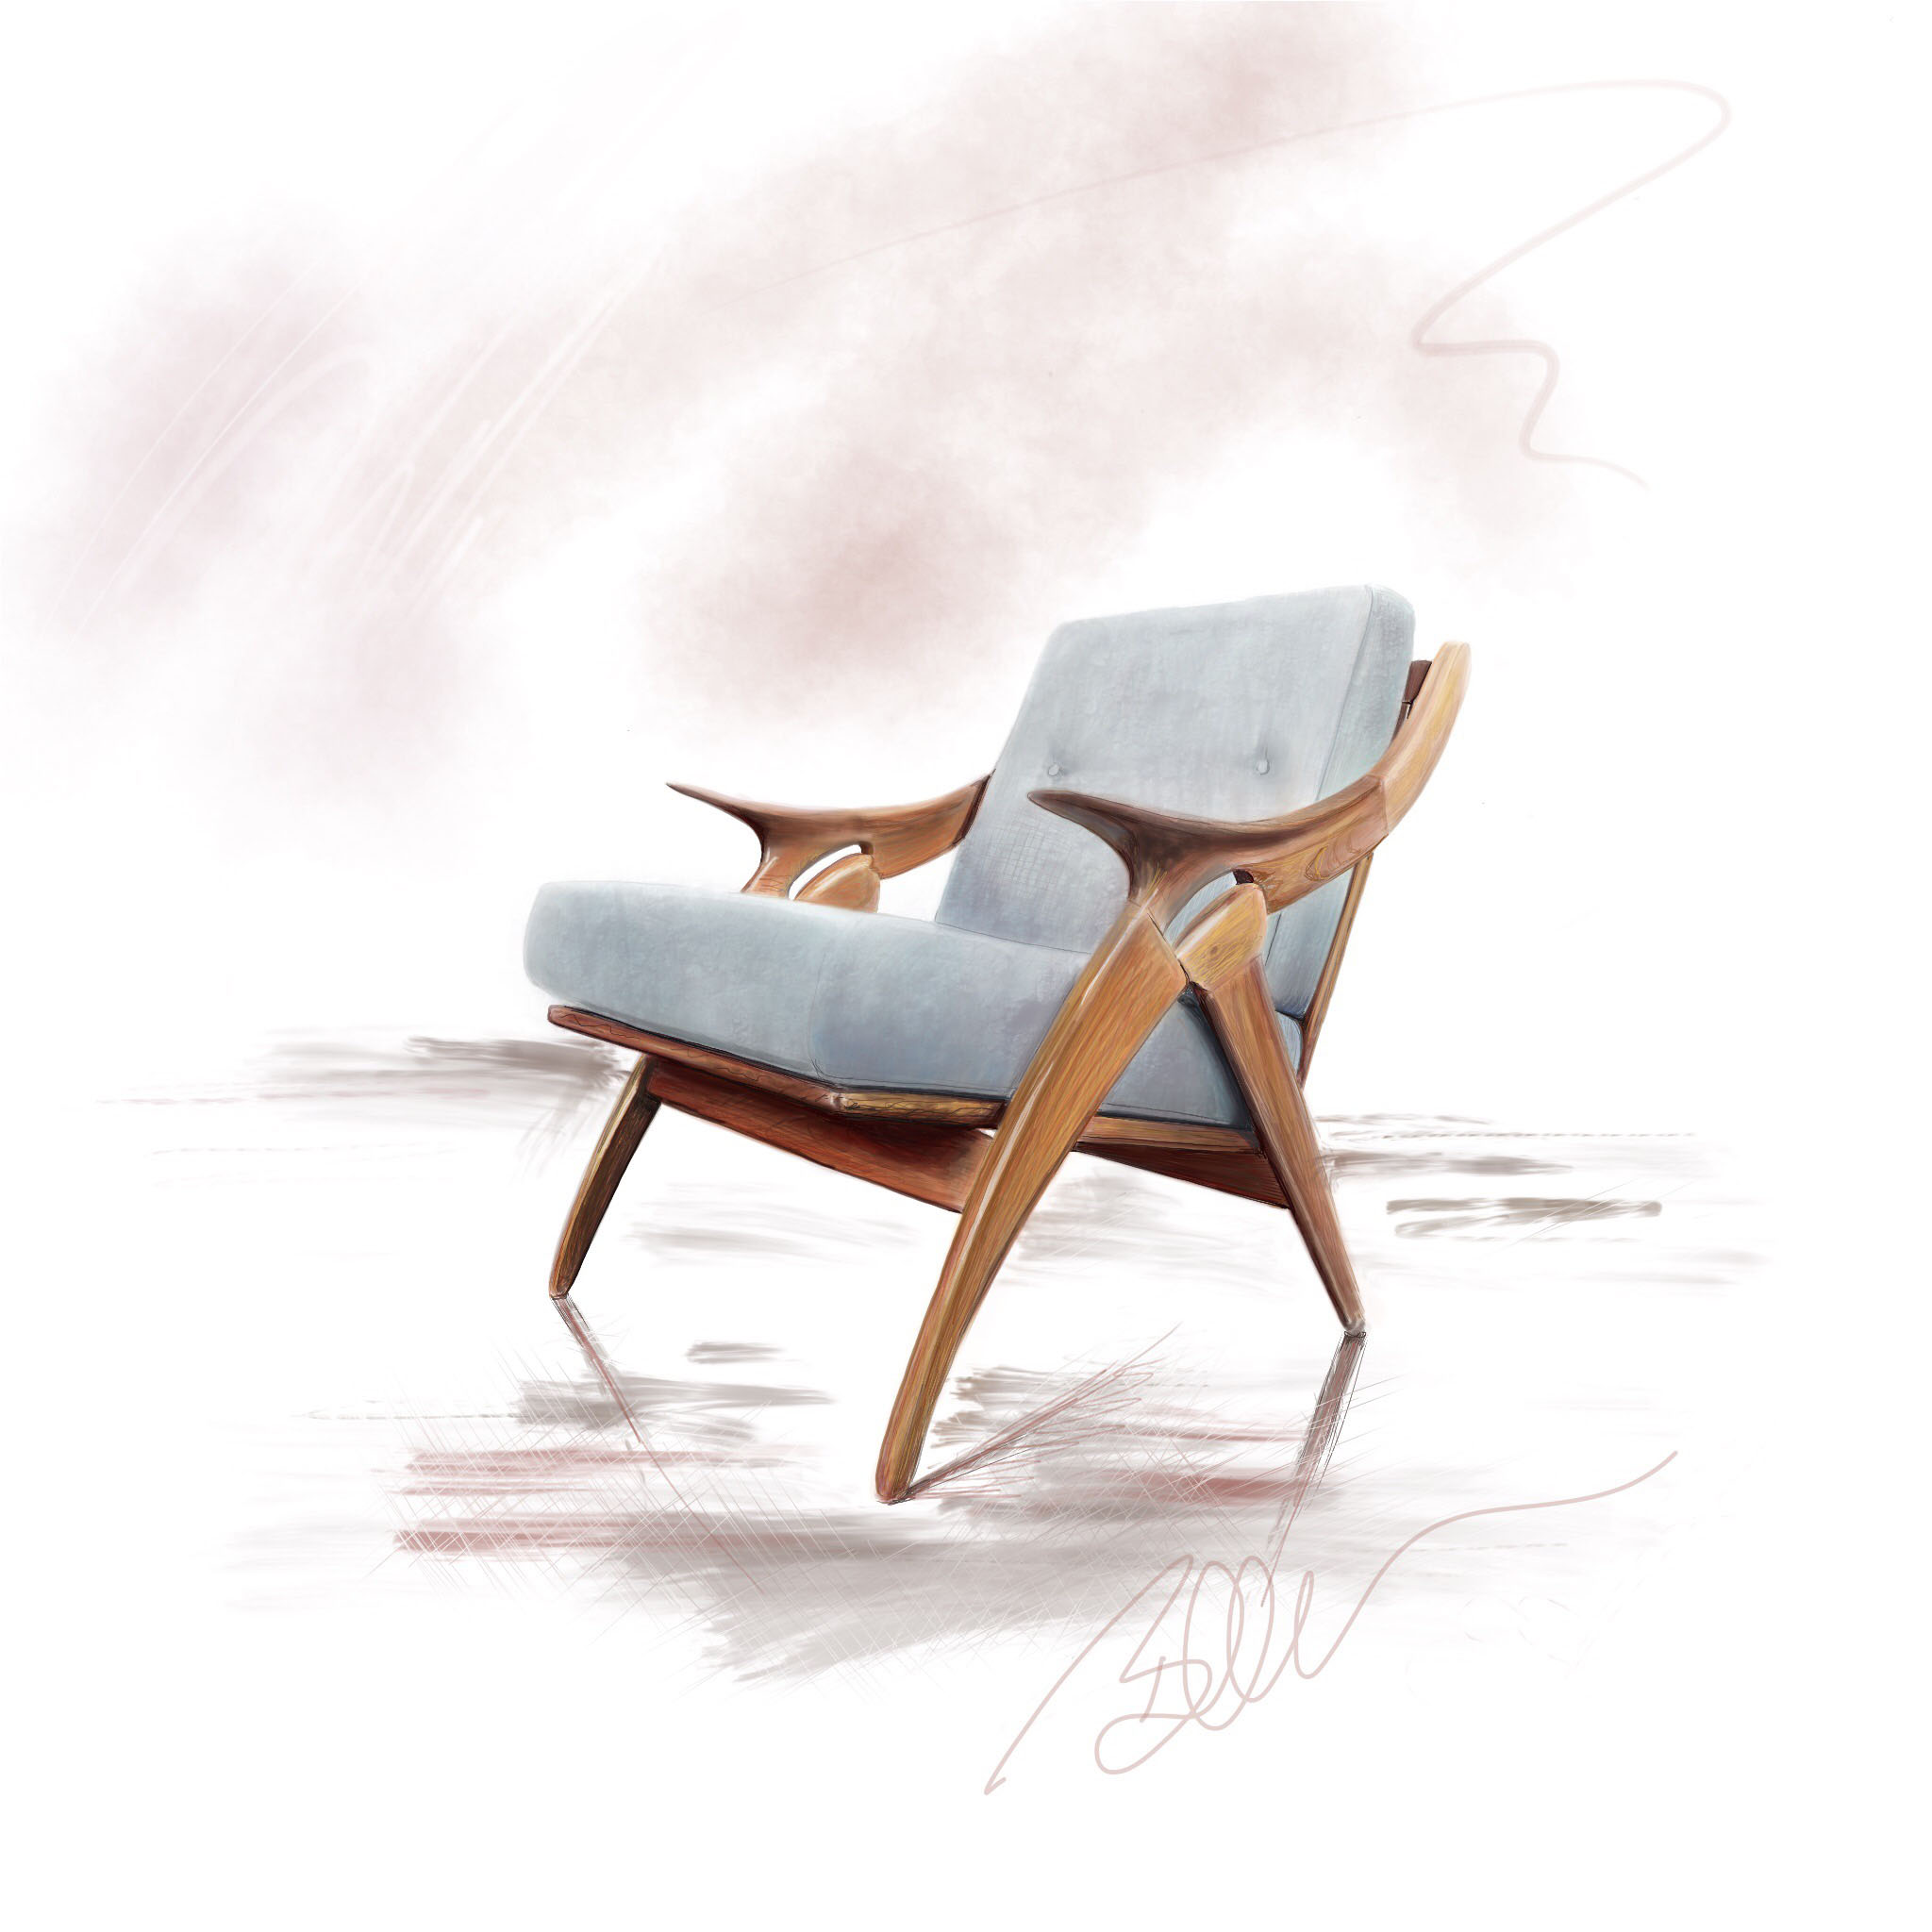 Mid-Century Modern Chair Digital Drawing ©Beth Ortman